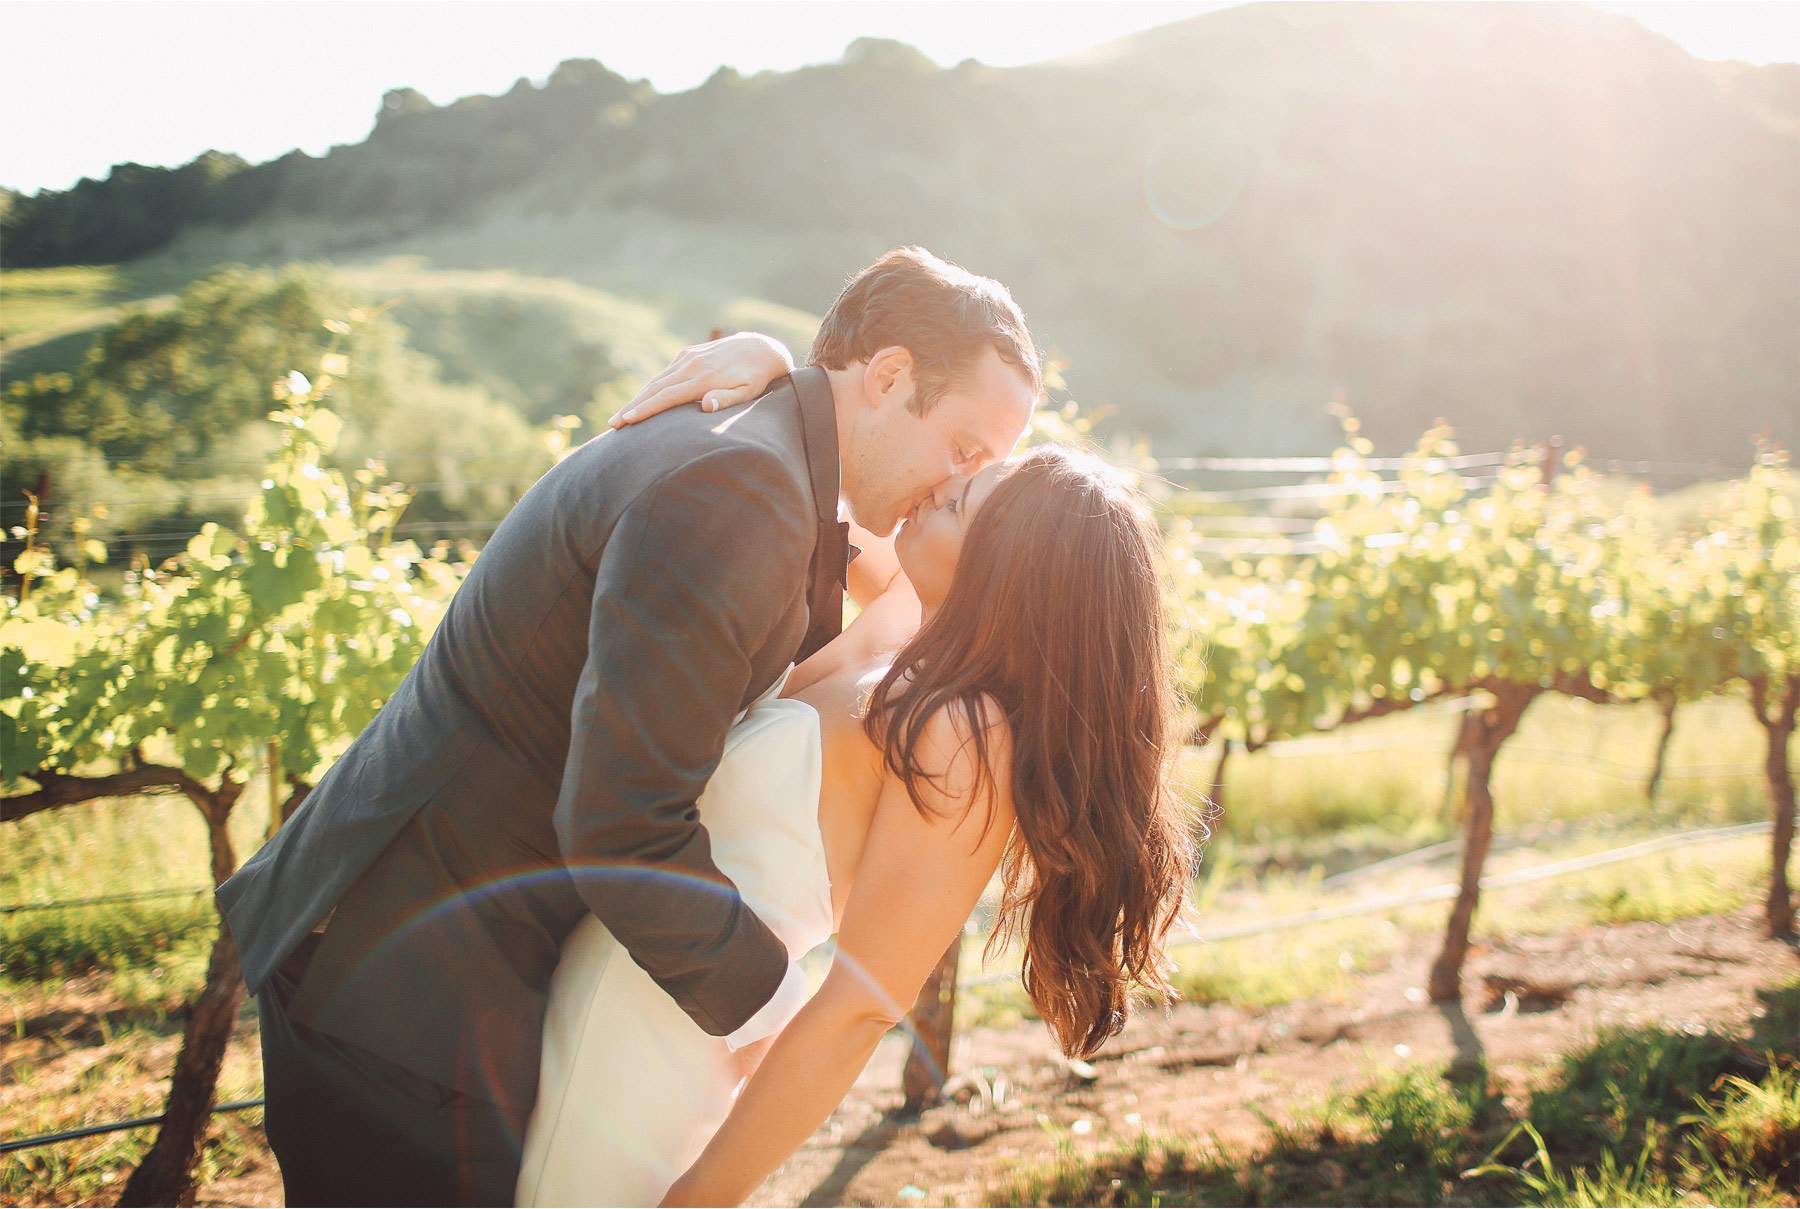 23-Napa-California-Wedding-Photographer-by-Andrew-Vick-Photography-Spring-Destination-Carneros-Resort-and-Spa-Bride-Groom-Vineyard-Winery-Kiss-Dip-Vintage-Alex-and-Roger.jpg